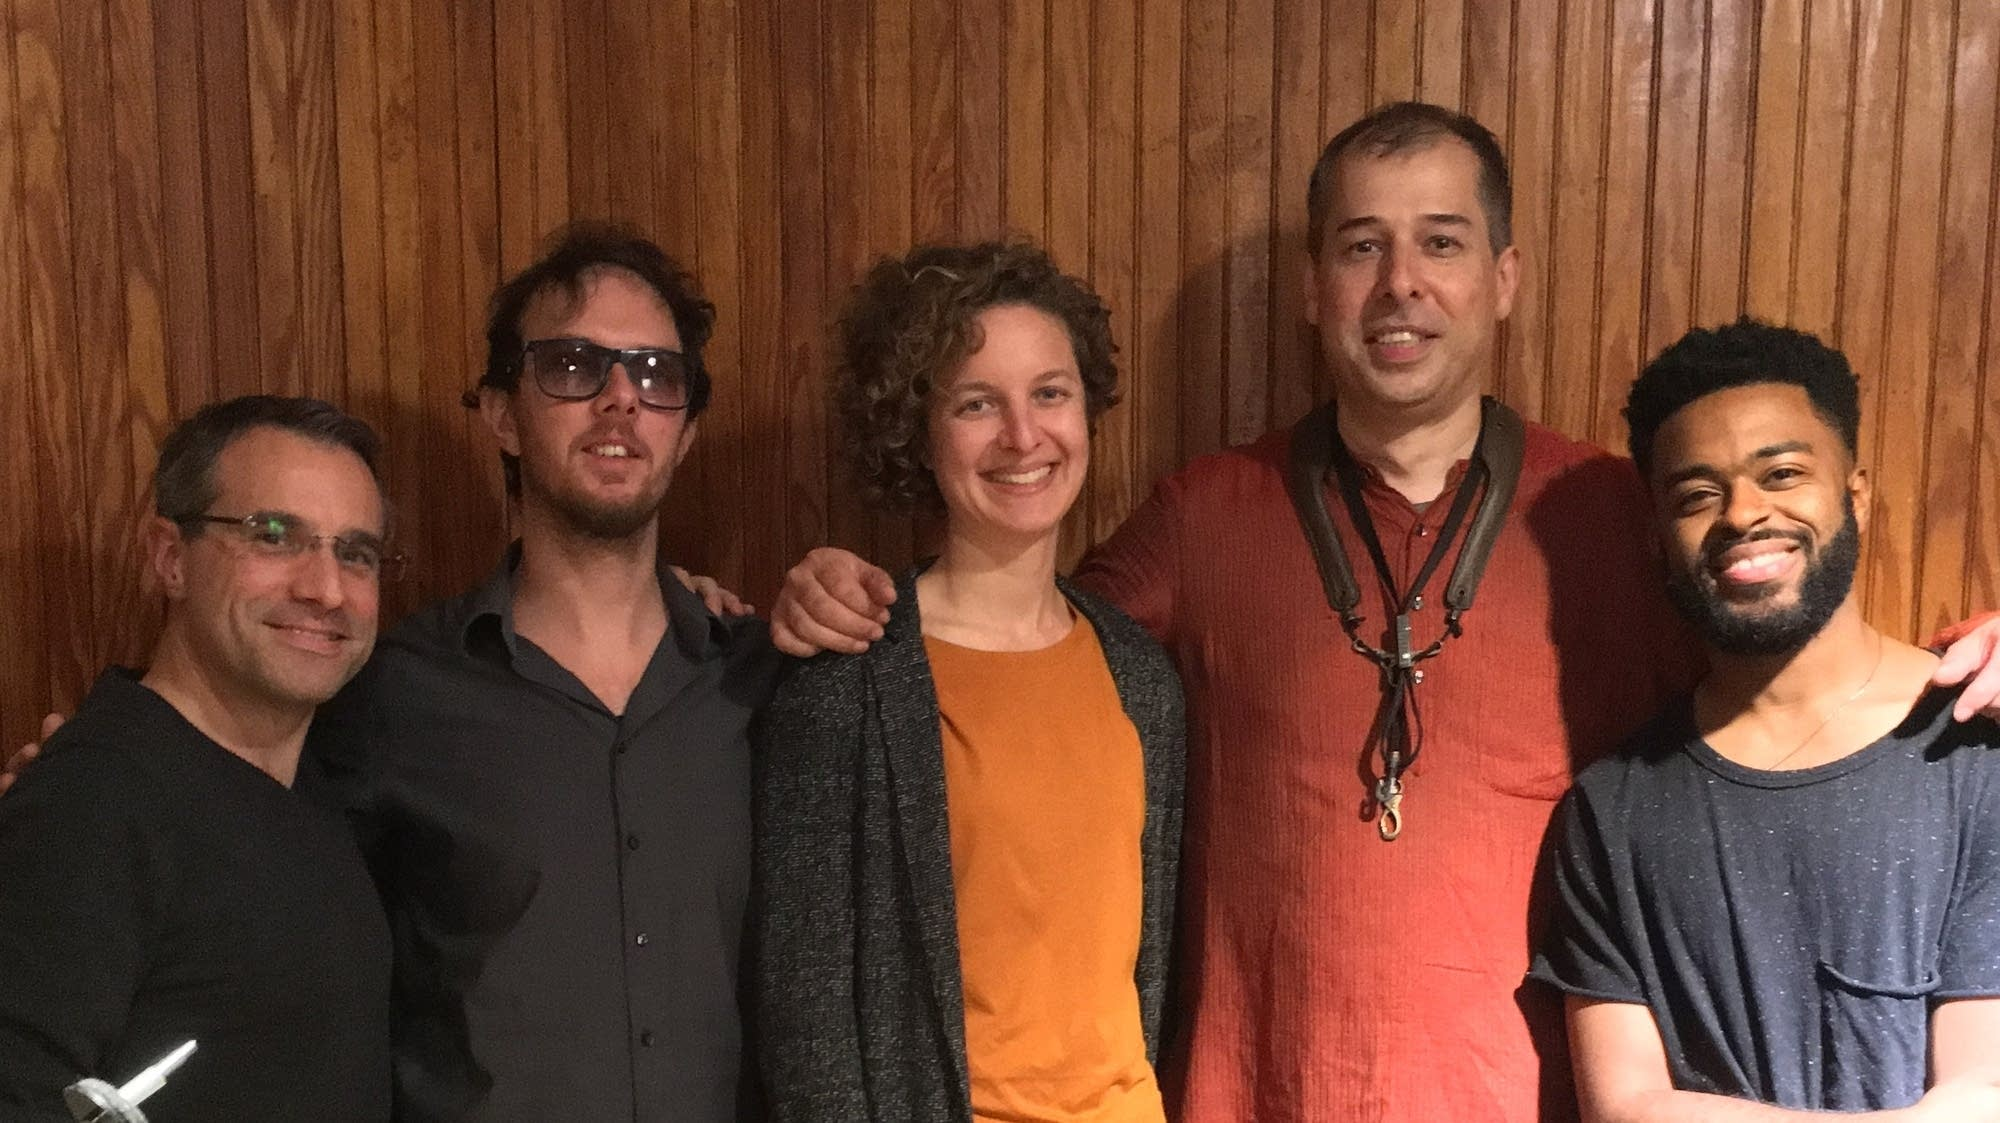 Luthra (second from right) and band with producer Jocelyn Frank (center)